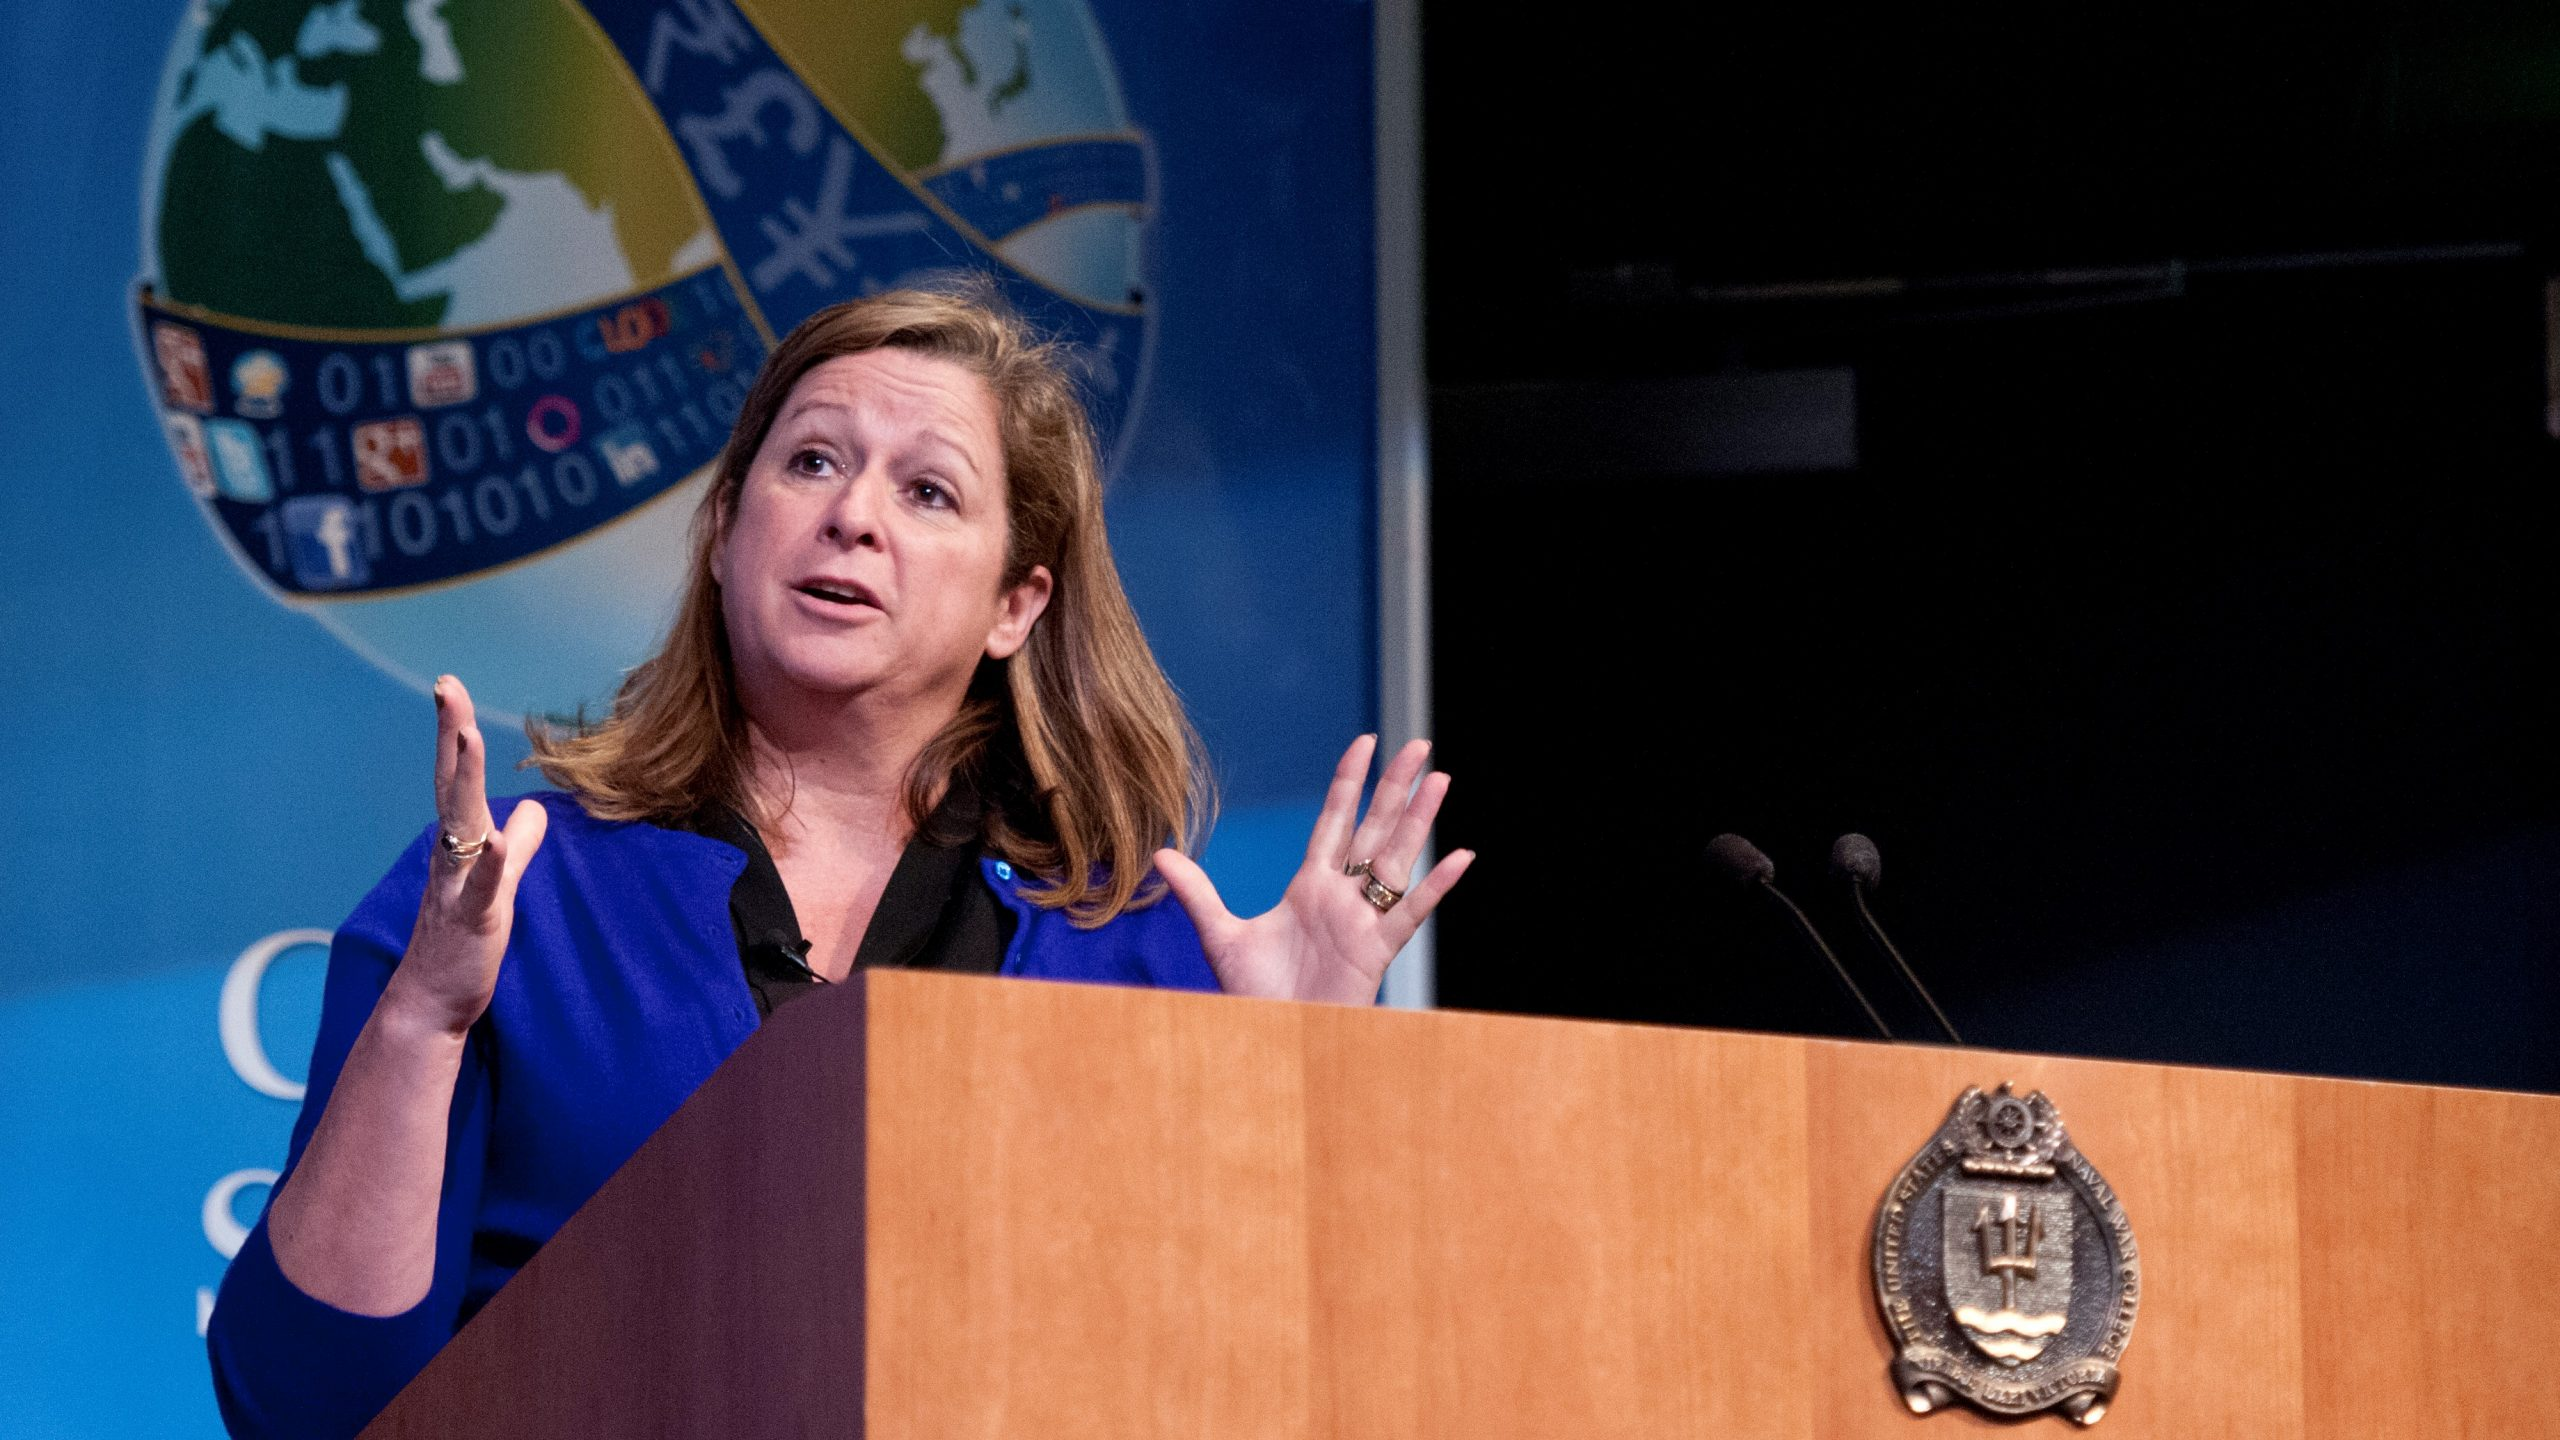 Abigail Disney in 2020